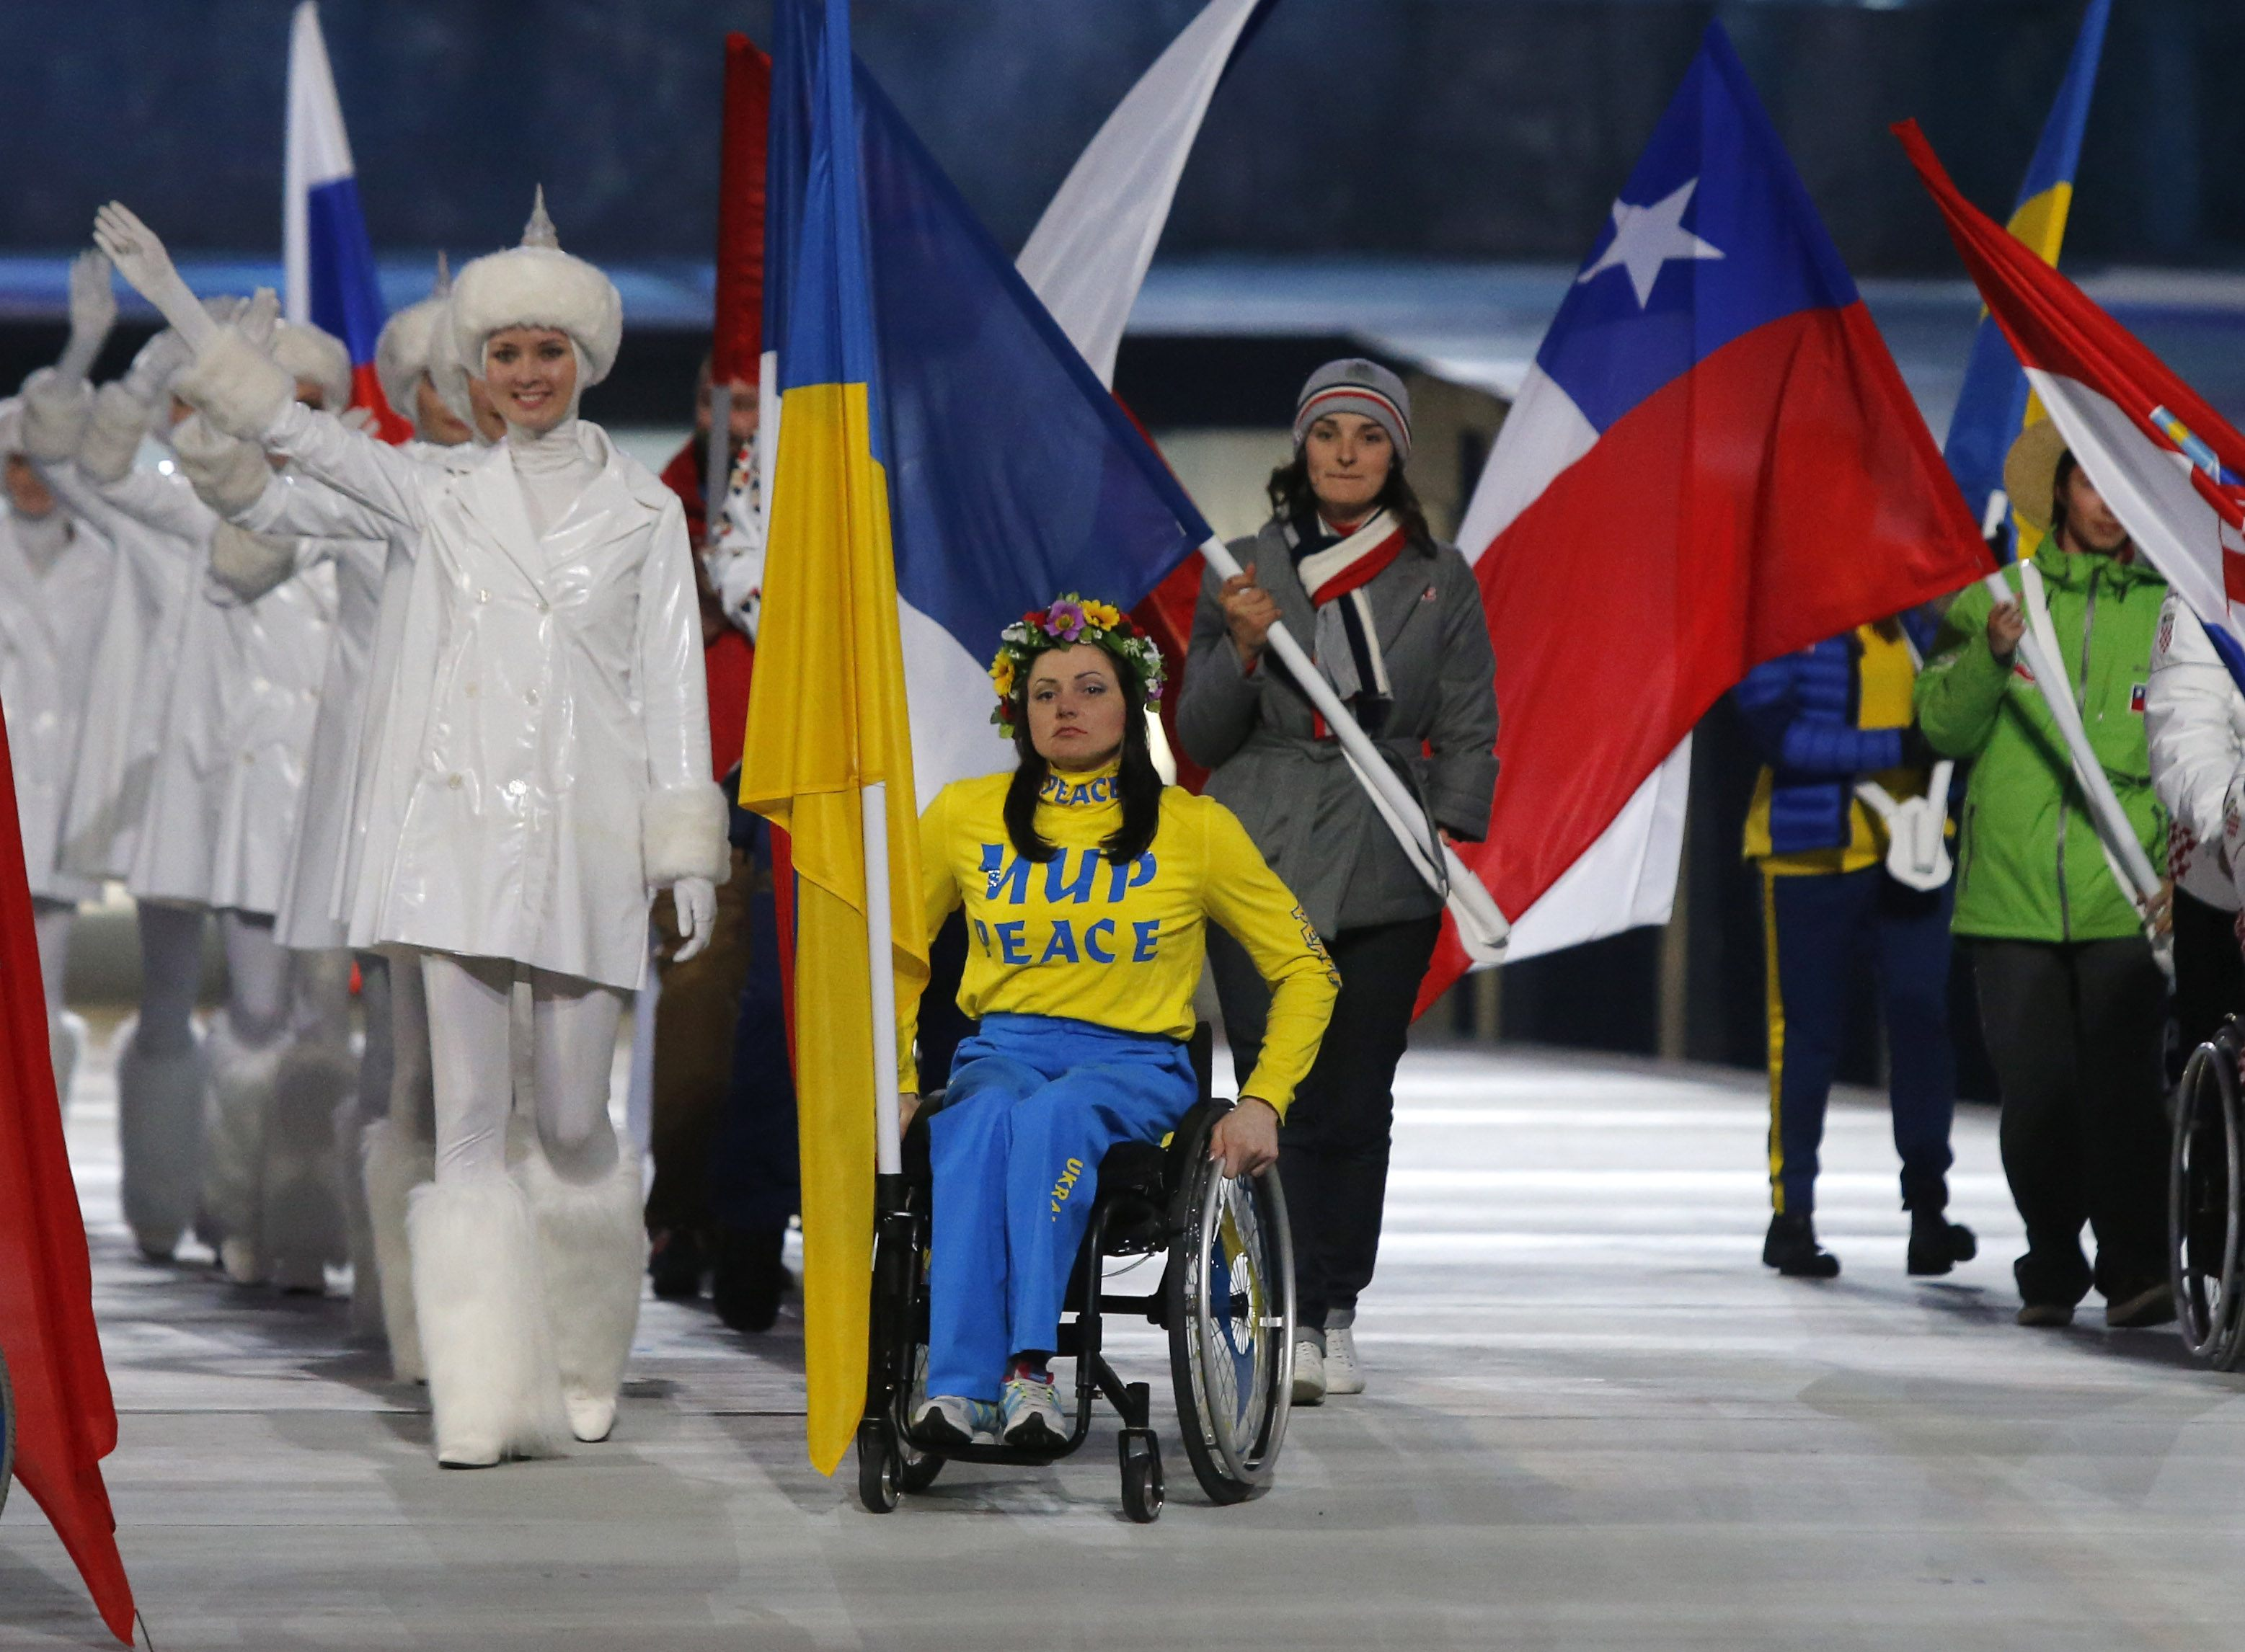 Ukraine's flag-bearer Pavlenko arrives at the stadium during the closing ceremony of the 2014 Paralympic Winter Games in Sochi